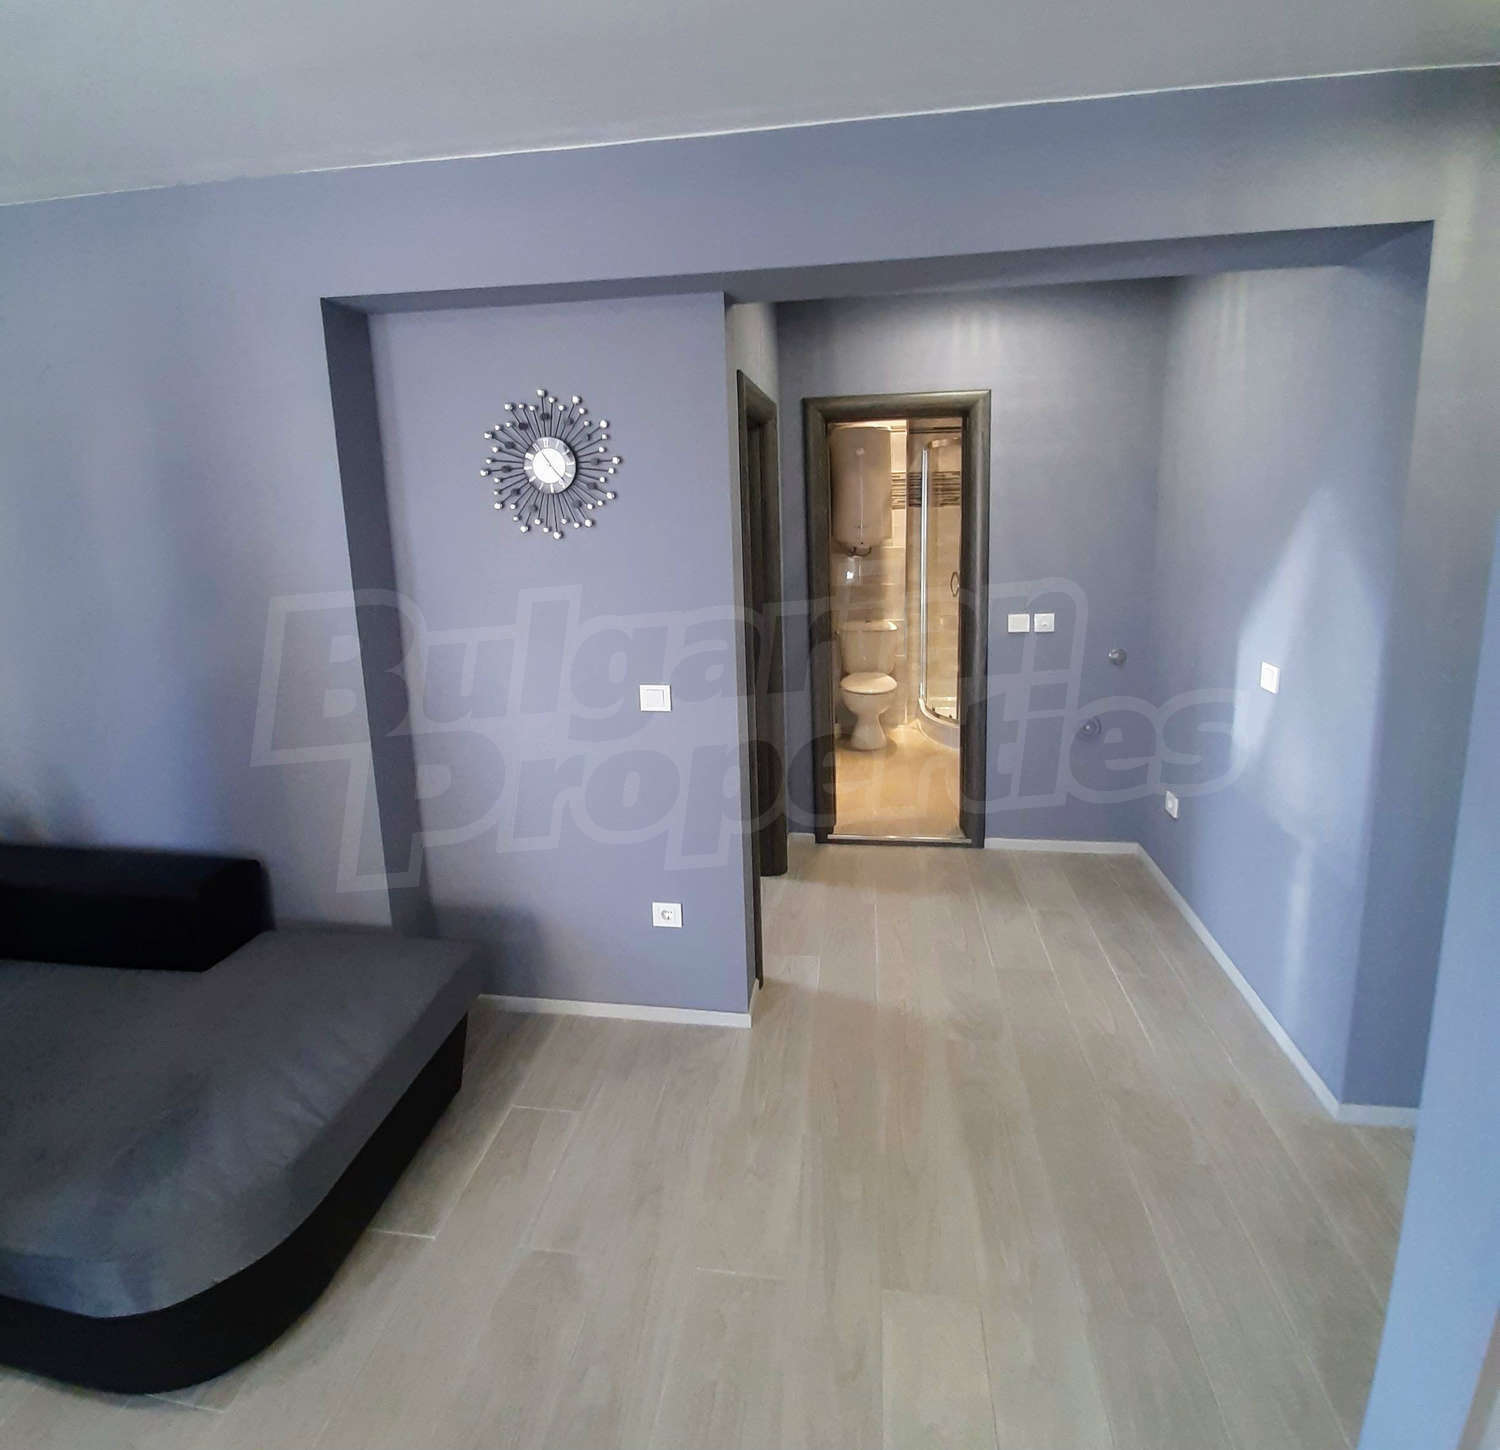 2-bedroom Apartment For Sale In Central Park 3 Resort Near